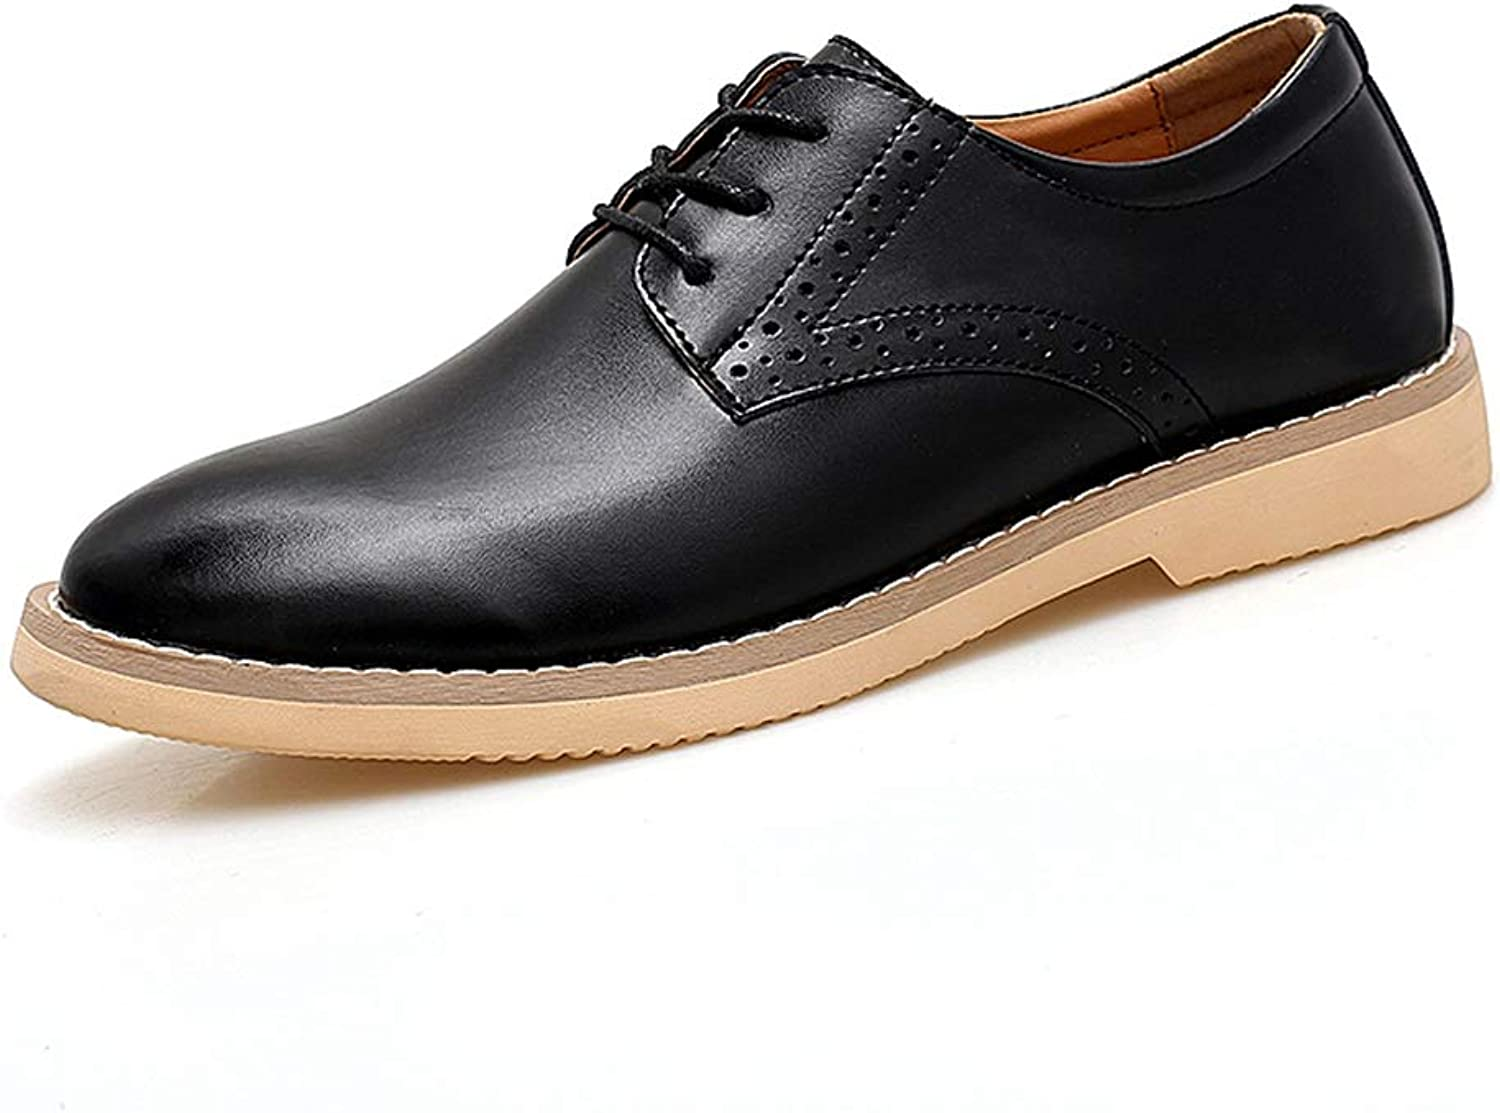 Patent leather Men's Business Stylish comfortable Breathable Oxford Casual Youth Trend Simple Pure color Lace Up Formal shoes Formal wear Dress shoes (color   Black, Size   7.5 UK)